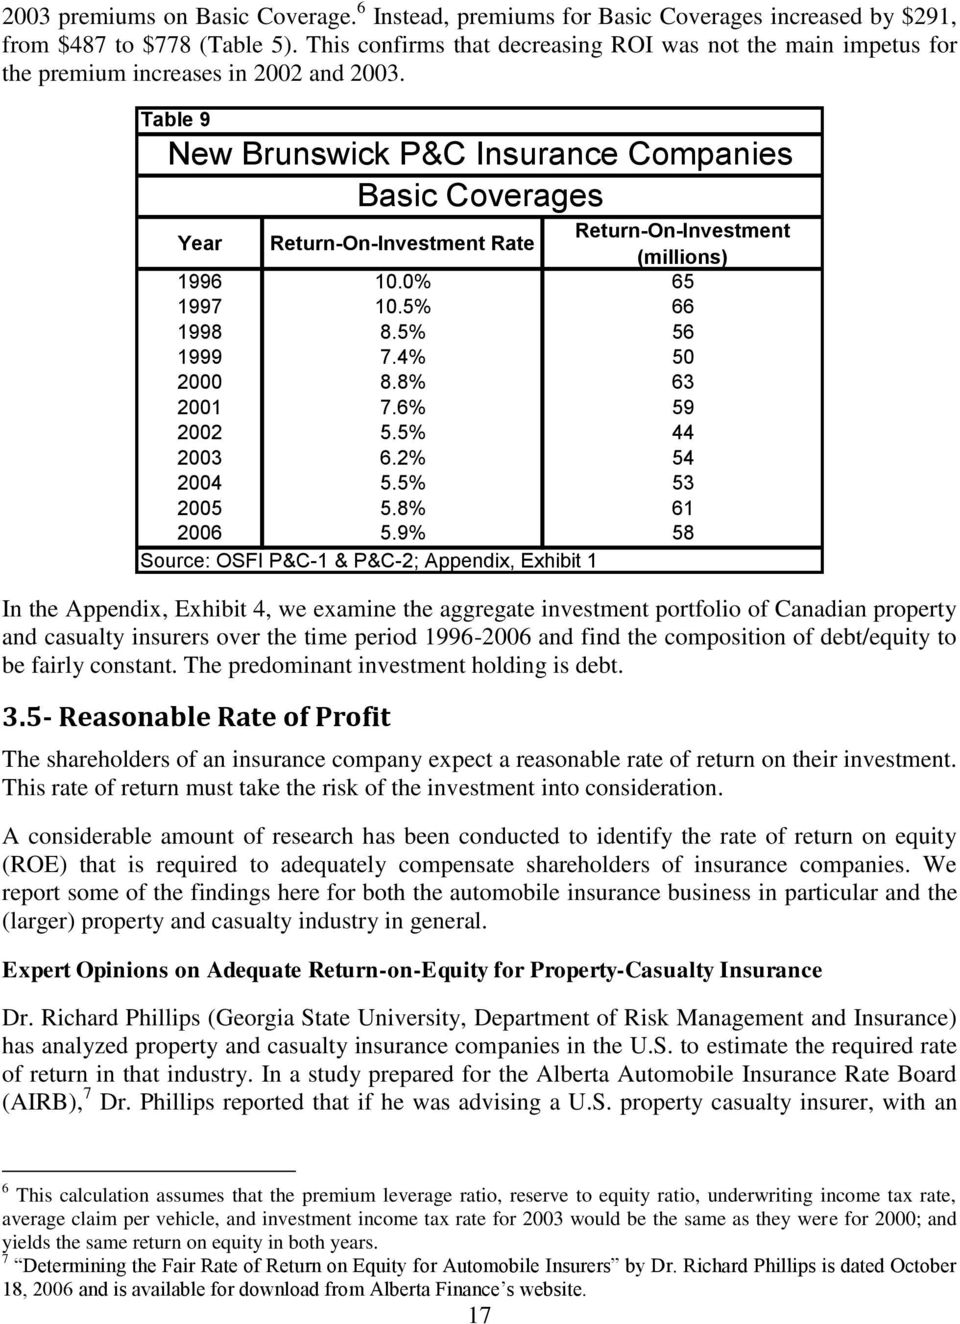 Table 9 New Brunswick P&C Insurance Companies Basic Coverages Year Return-On-Investment Rate Return-On-Investment (millions) 1996 10.0% 65 1997 10.5% 66 1998 8.5% 56 1999 7.4% 50 2000 8.8% 63 2001 7.